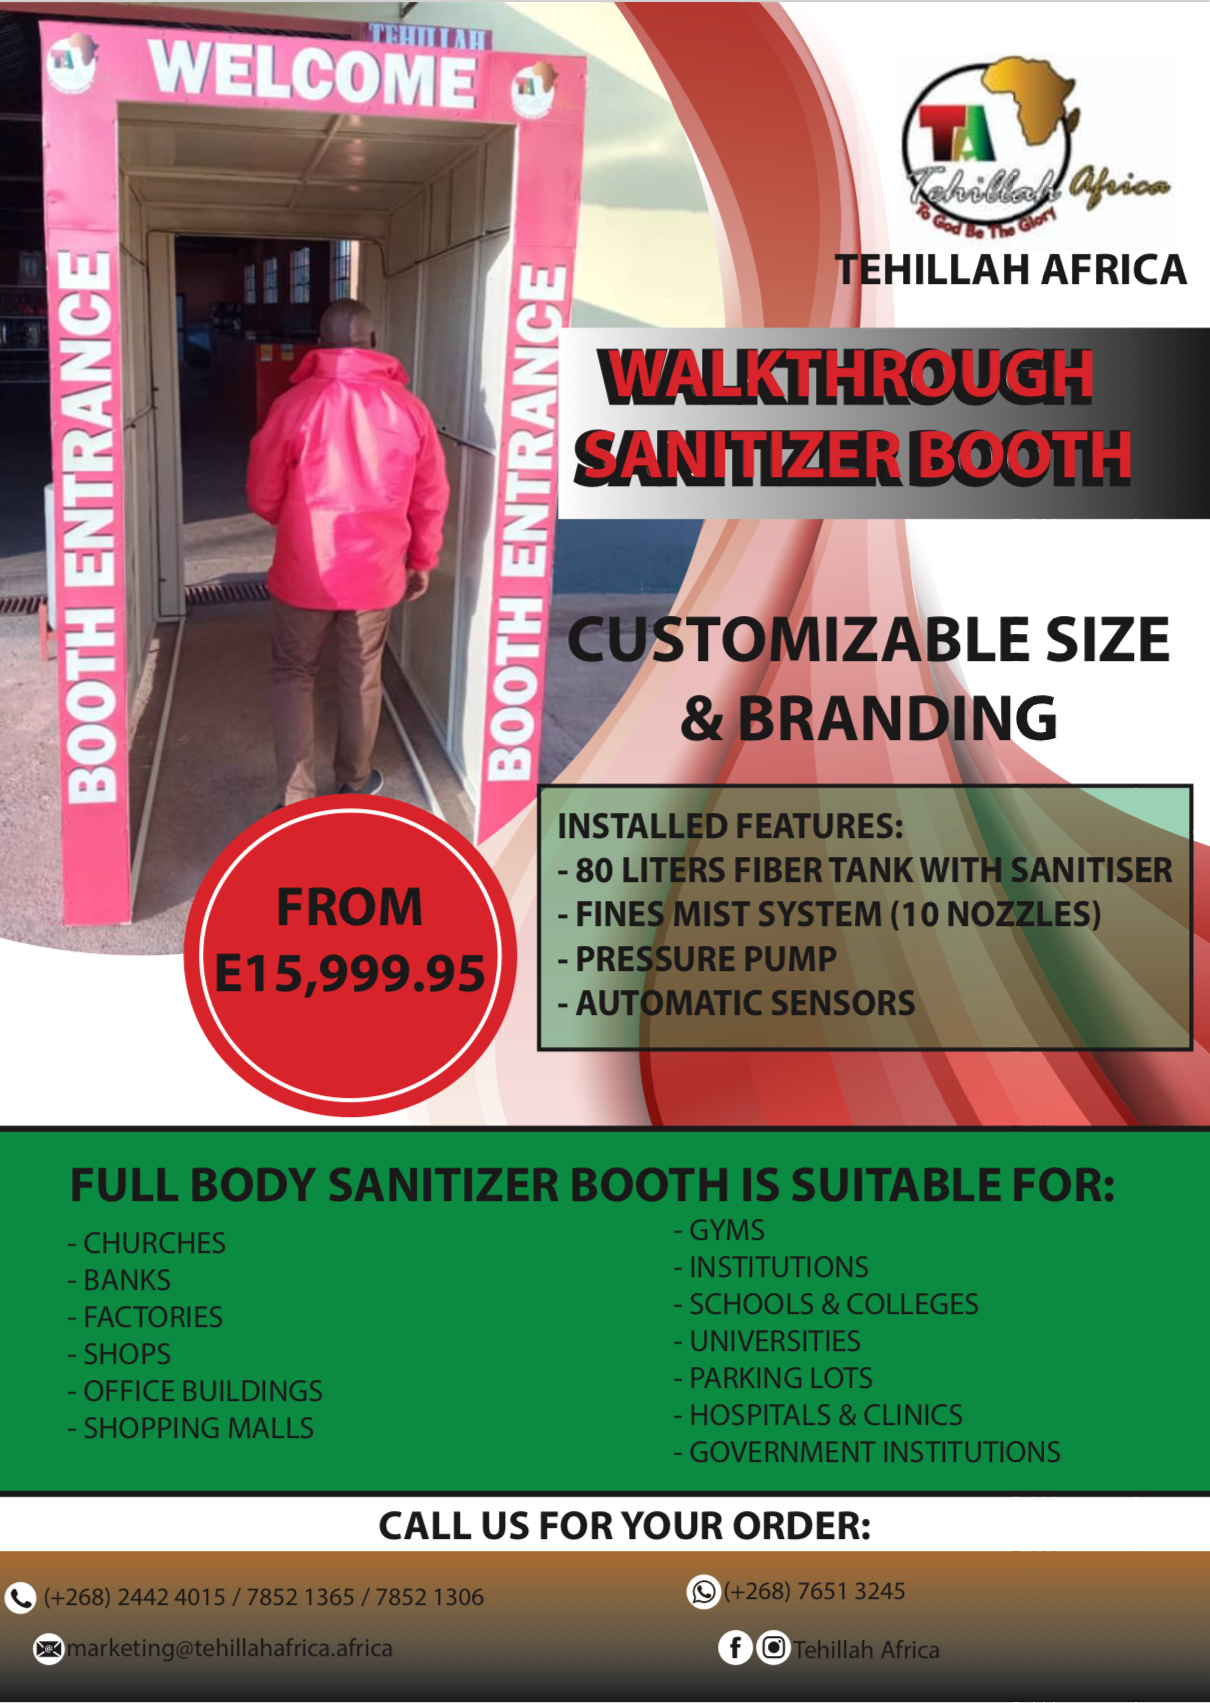 ADVERTORIAL: Tehillah Africa Eswatini introduces walkthrough sanitizer booth